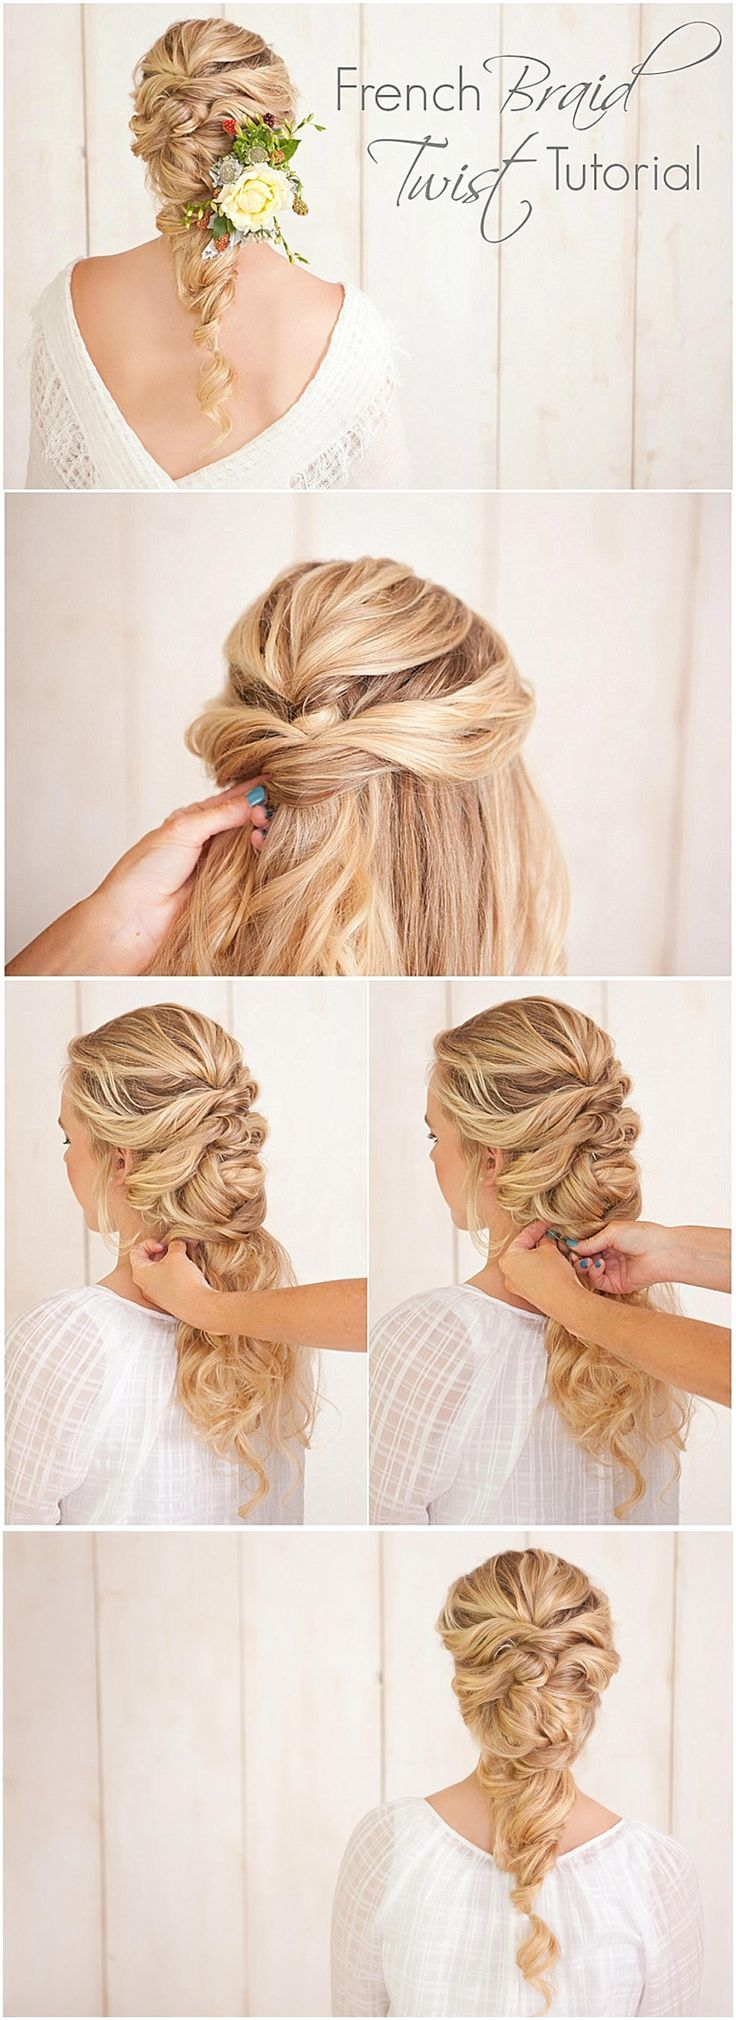 Hängen sich die Locken da auch raus?     French braid twist tutorial. Love this wedding hairstyle idea! Click to see the ... - http://1pic4u.com/2015/09/06/french-braid-twist-tutorial-love-this-wedding-hairstyle-idea-click-to-see-the/